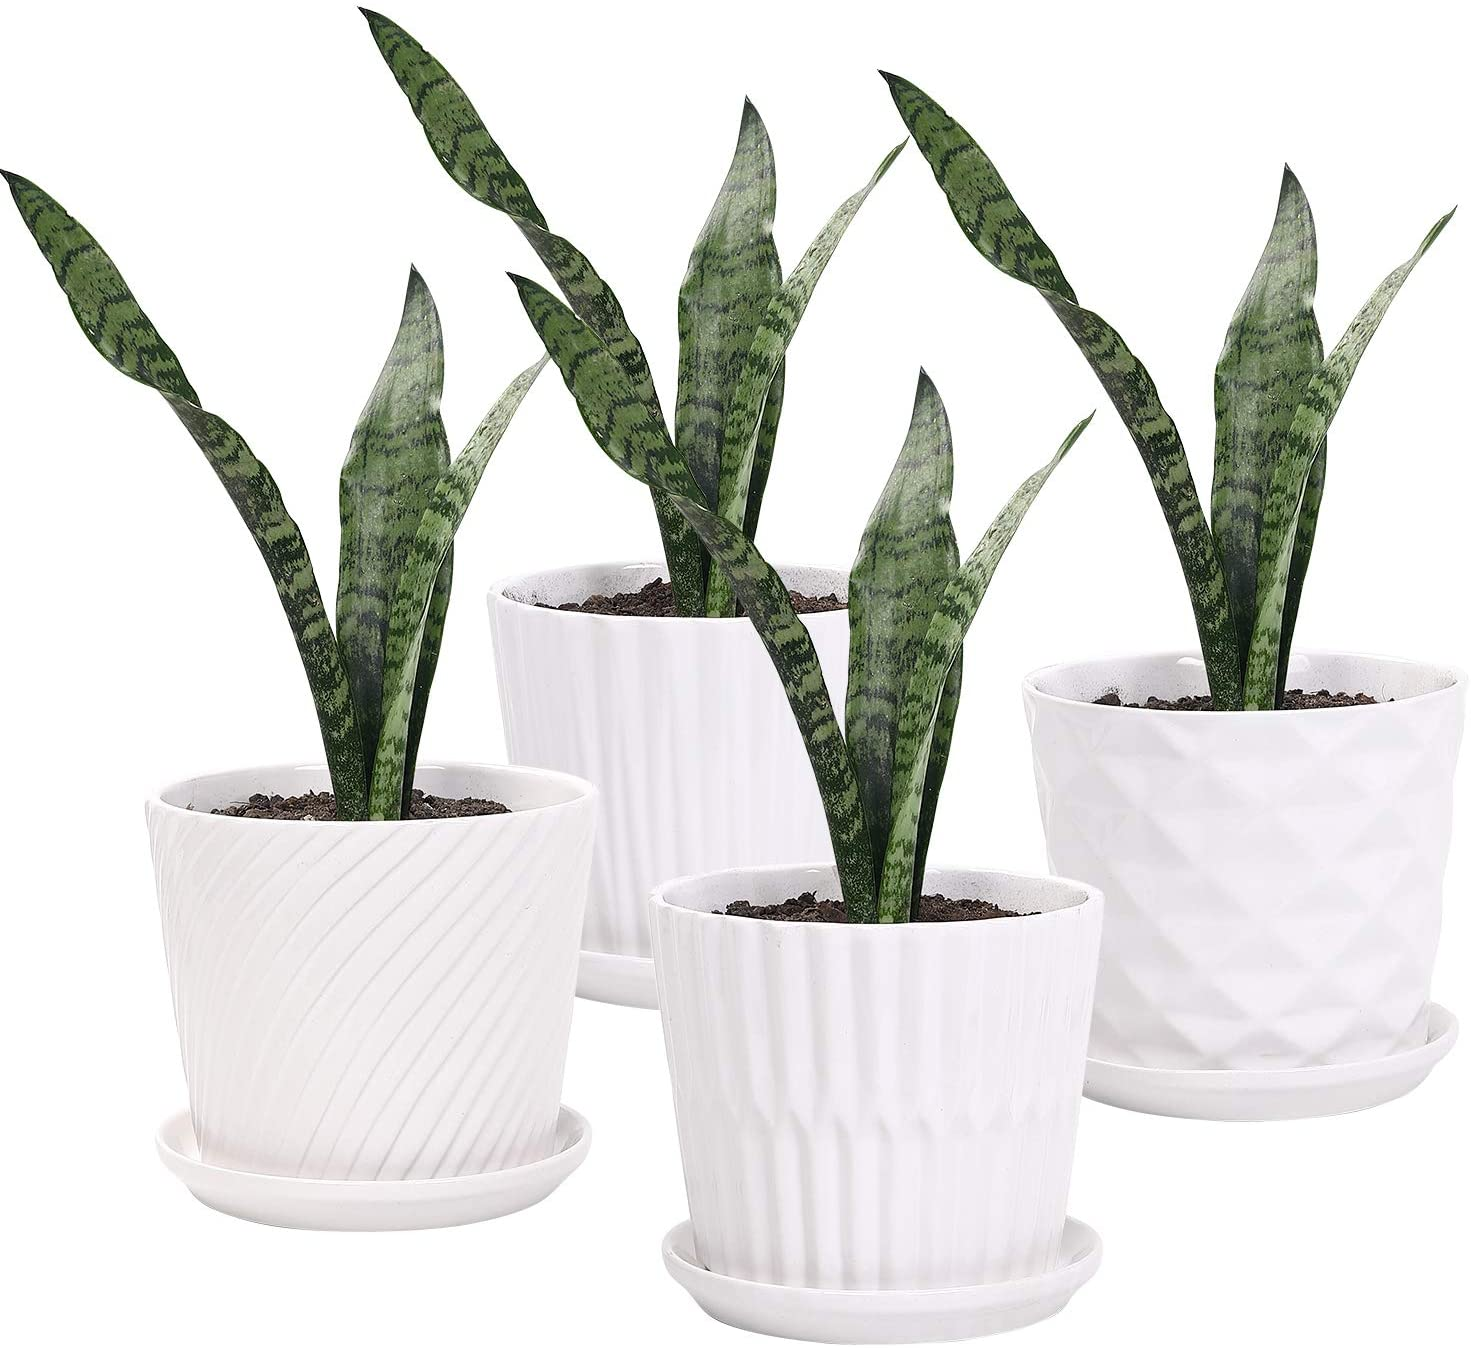 Amazon Com Plant Pots 5 5 Inch Cylinder Ceramic Planters With Connected Saucer Pots For Succuelnt And Little Snake Plants Set Of 4 White Garden Outdoor